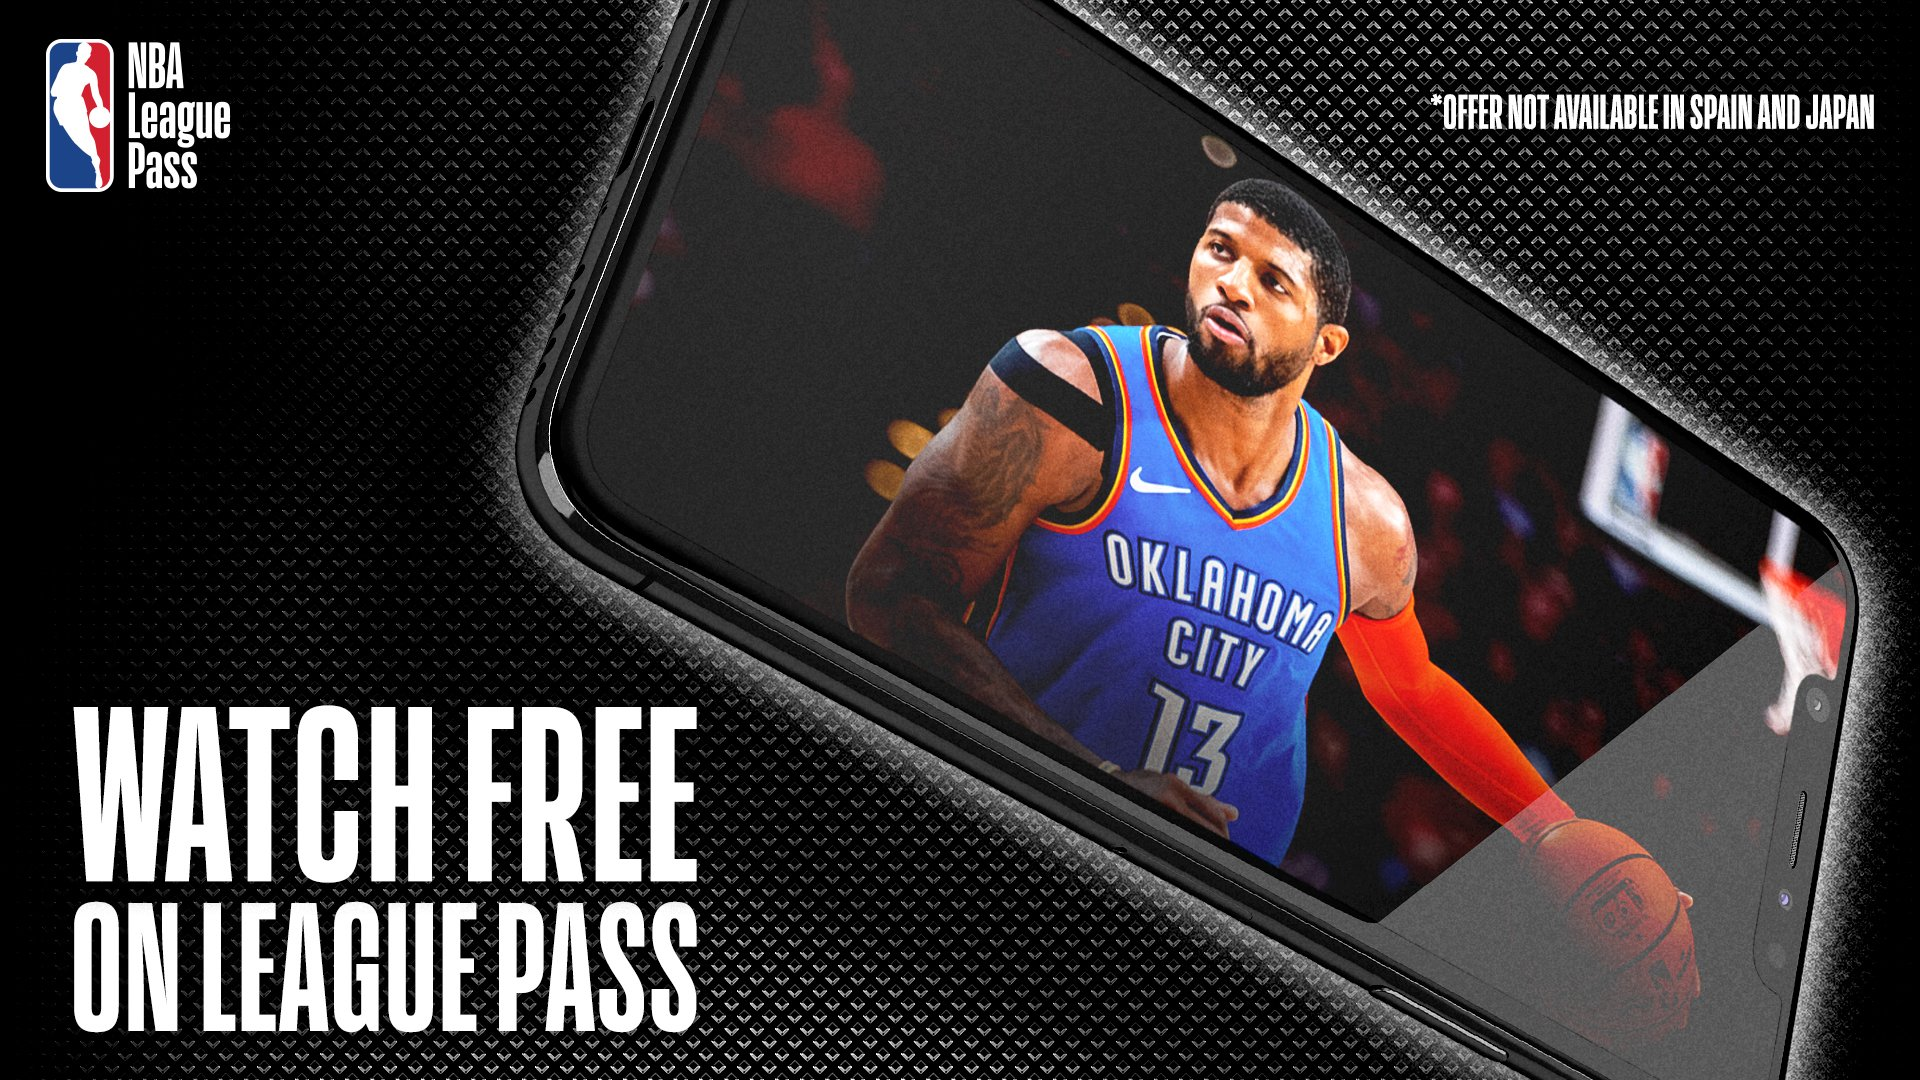 The season is heating up! �� Watch tonight's #NBA League Pass action for FREE!  ����: https://t.co/LkzVfwCsdB https://t.co/Mnm5ikvDHi